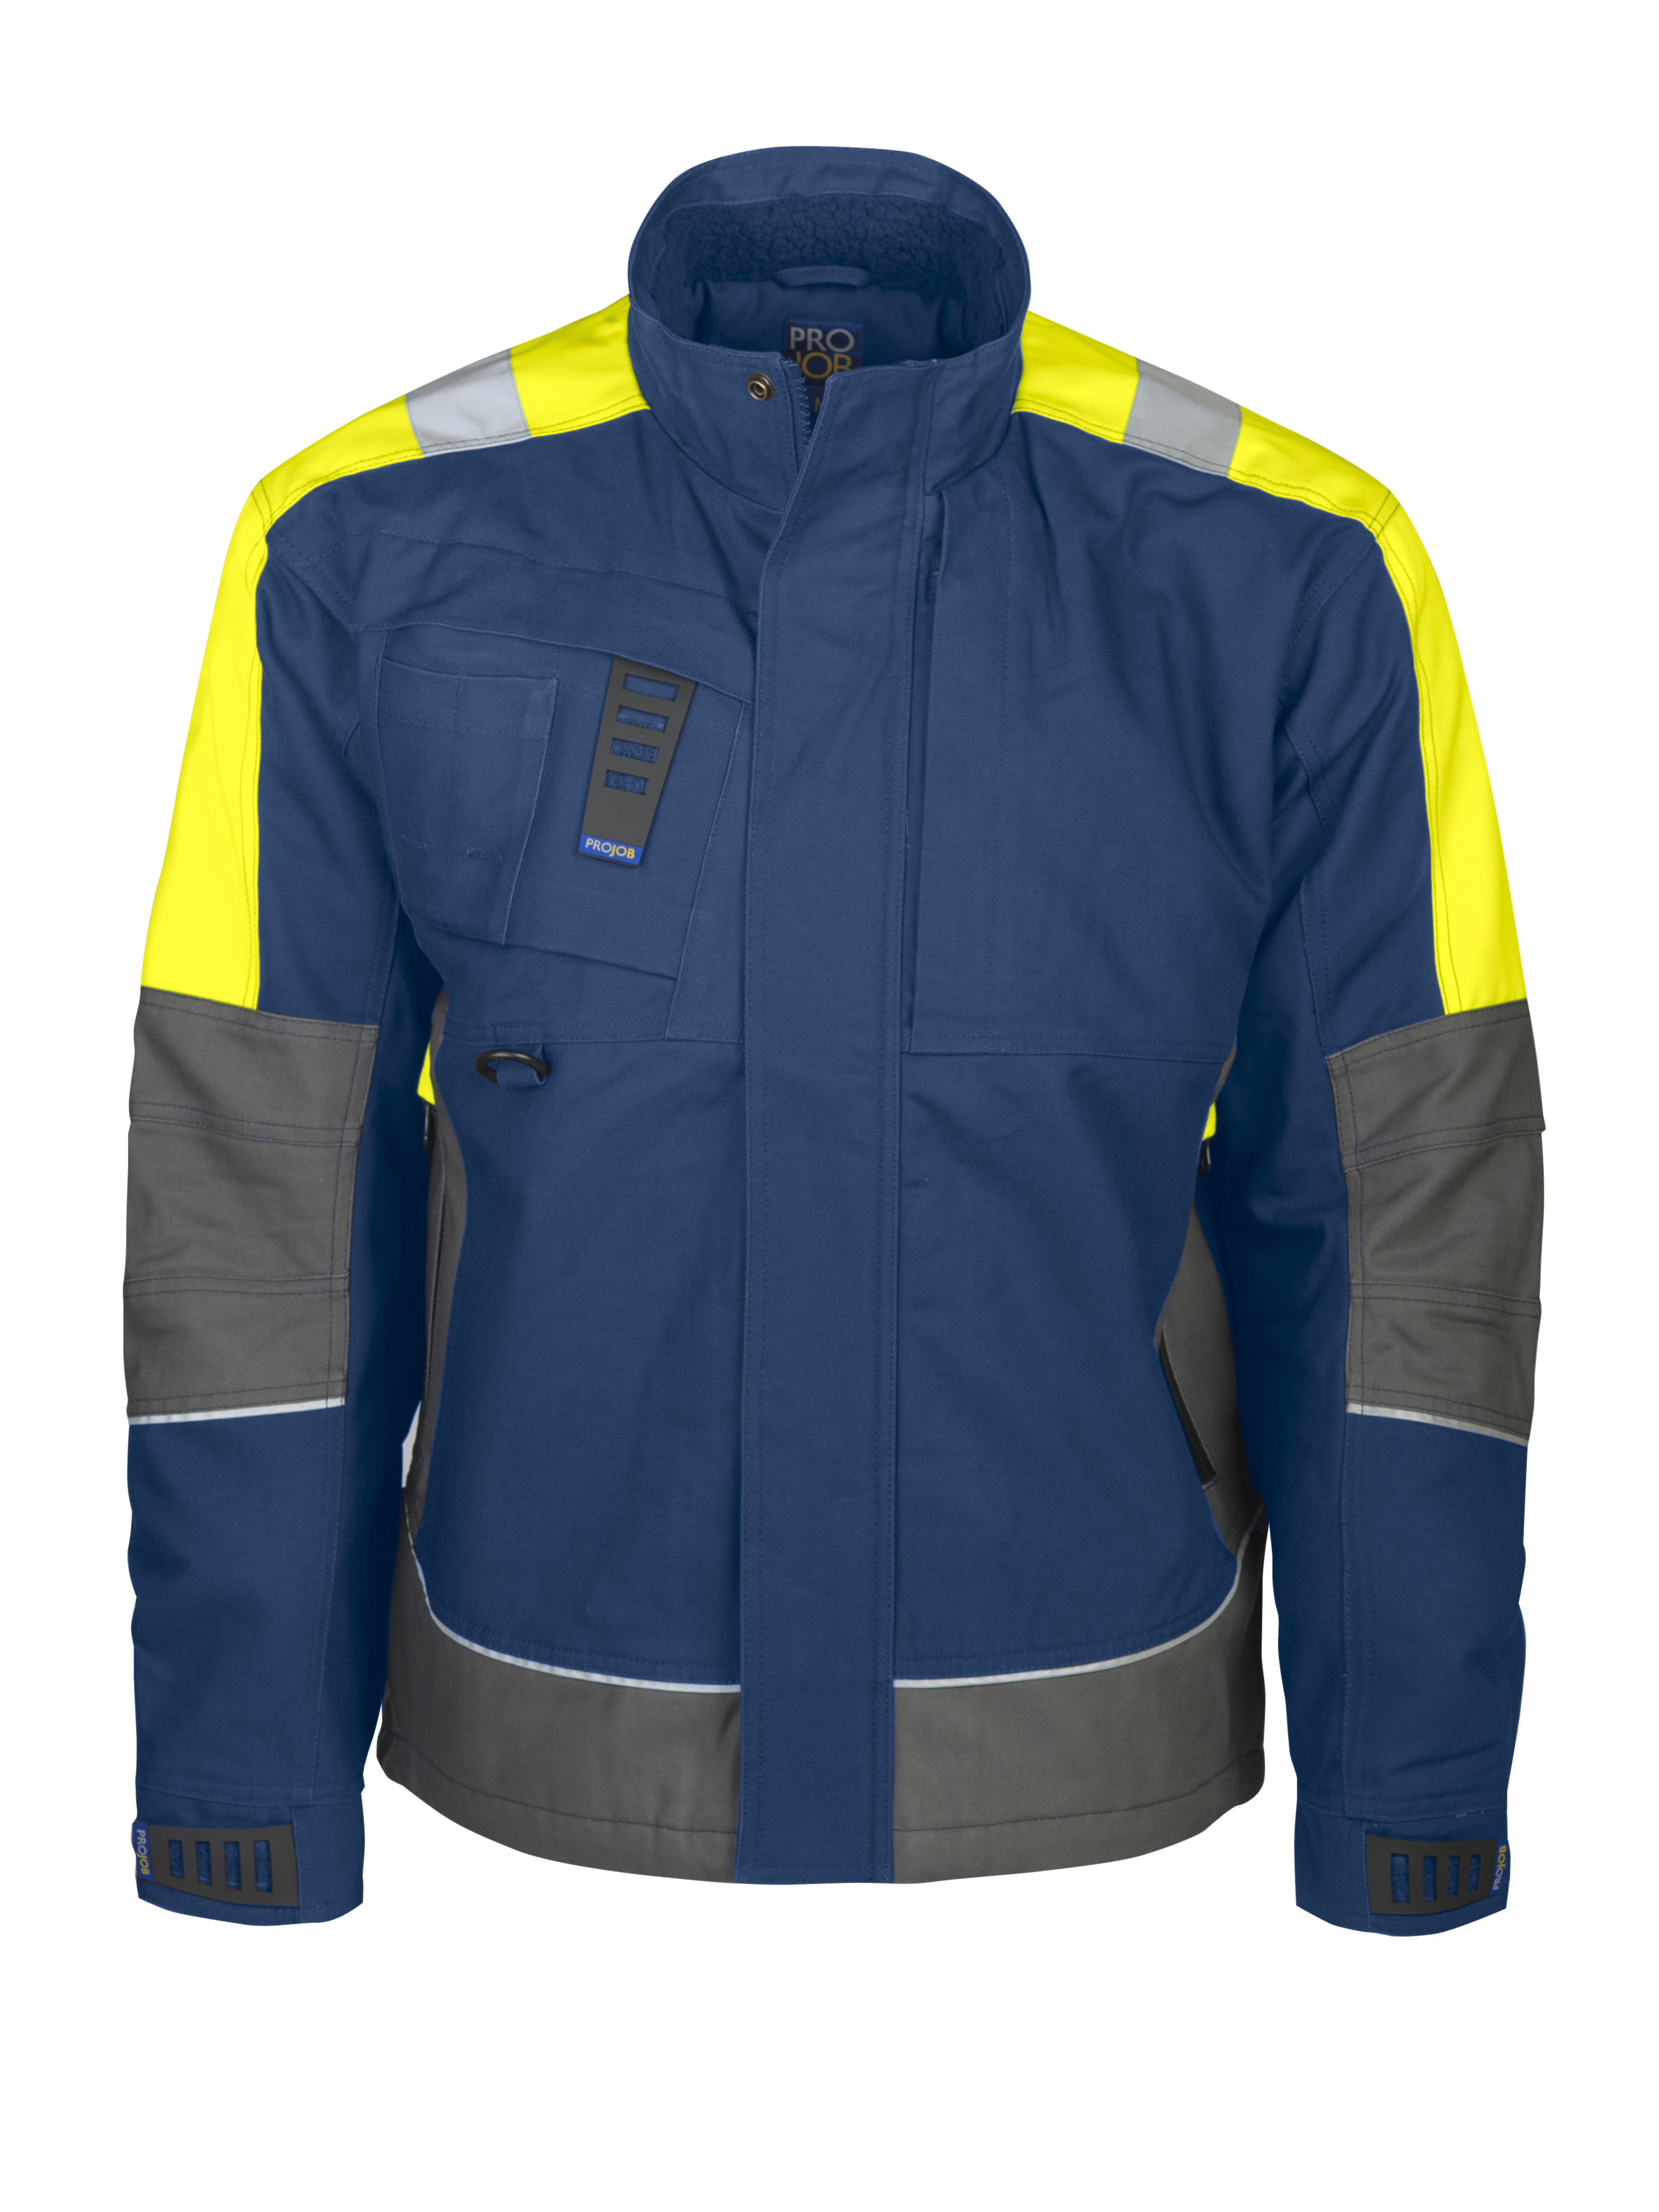 PROJOB 5411 PADDED JACKET - Mannen